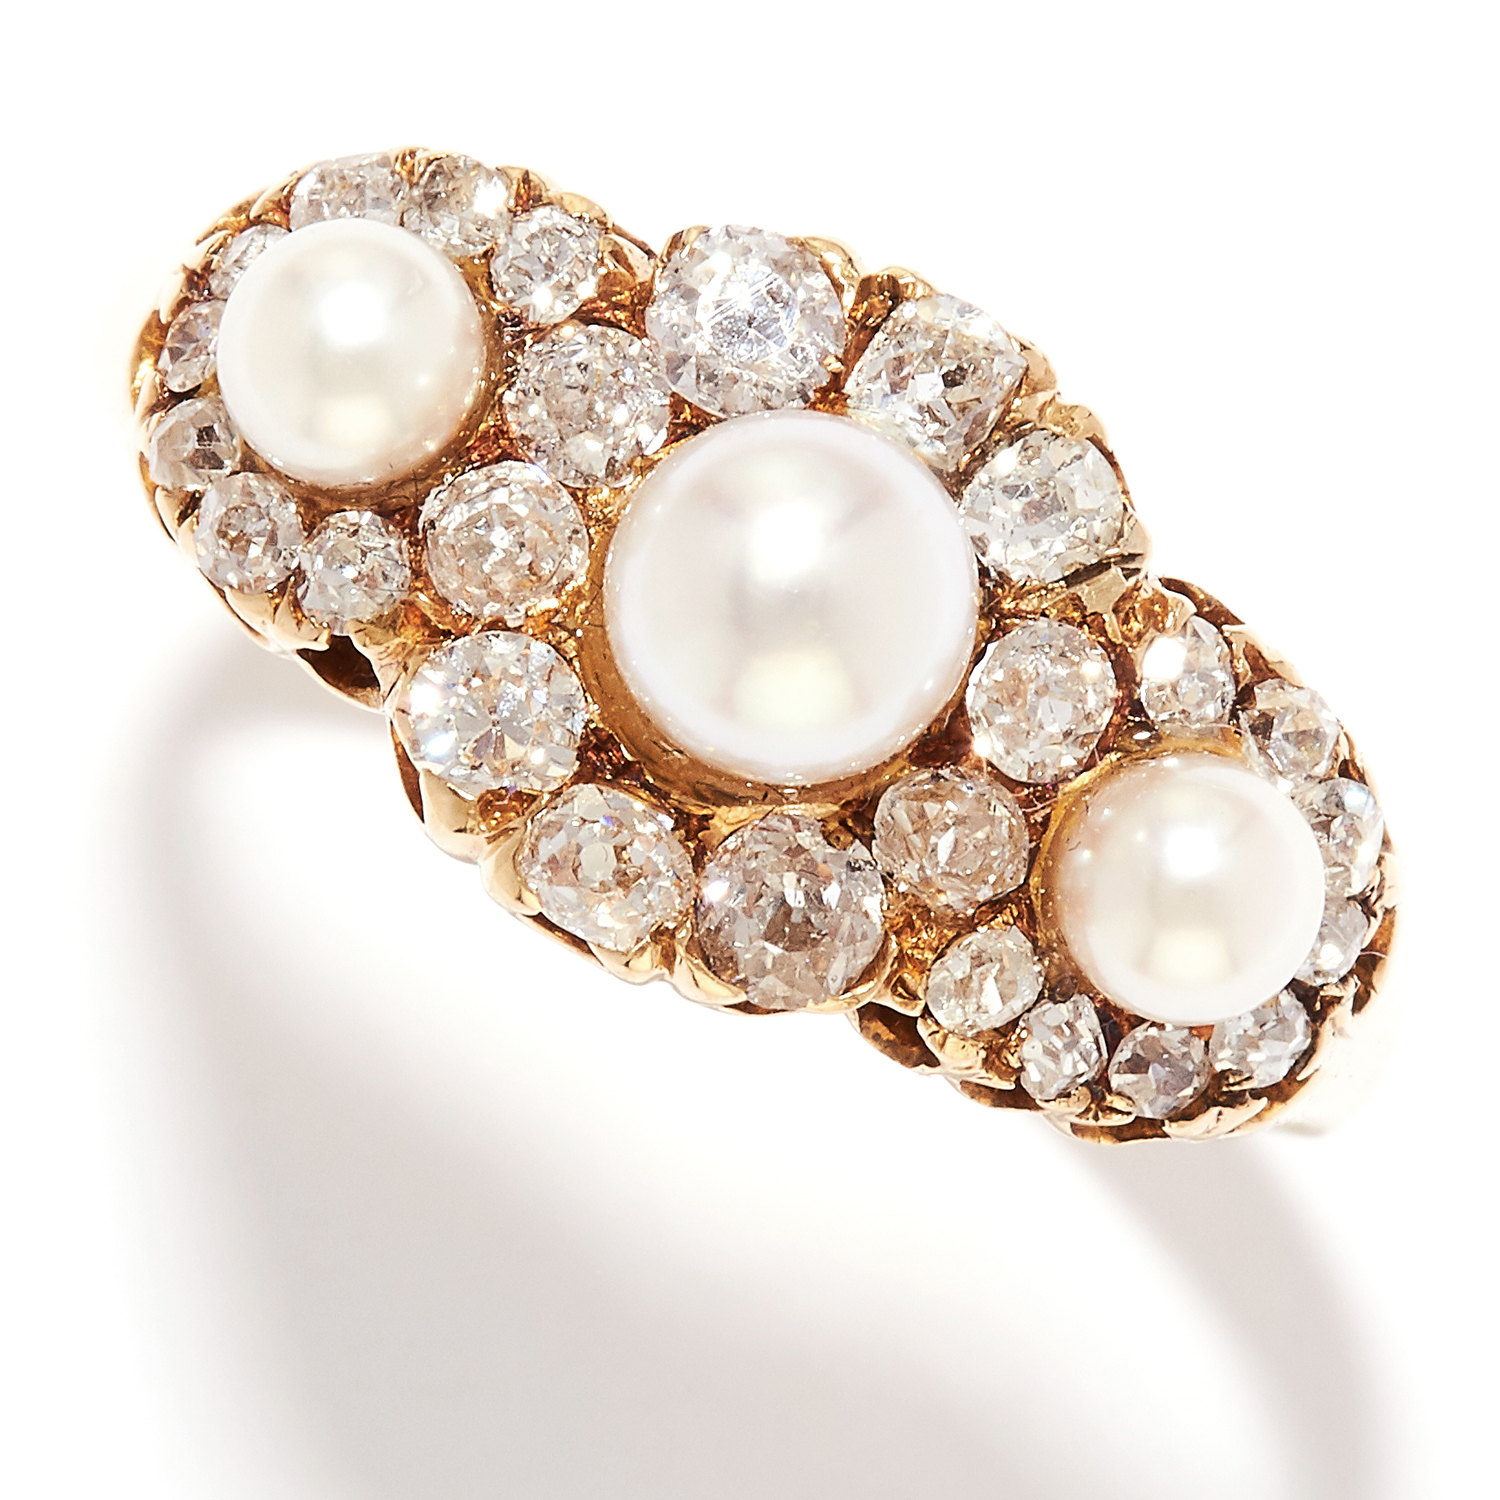 PEARL AND DIAMOND DRESS RING in 18ct yellow gold, set with three pearls in a cluster of old cut